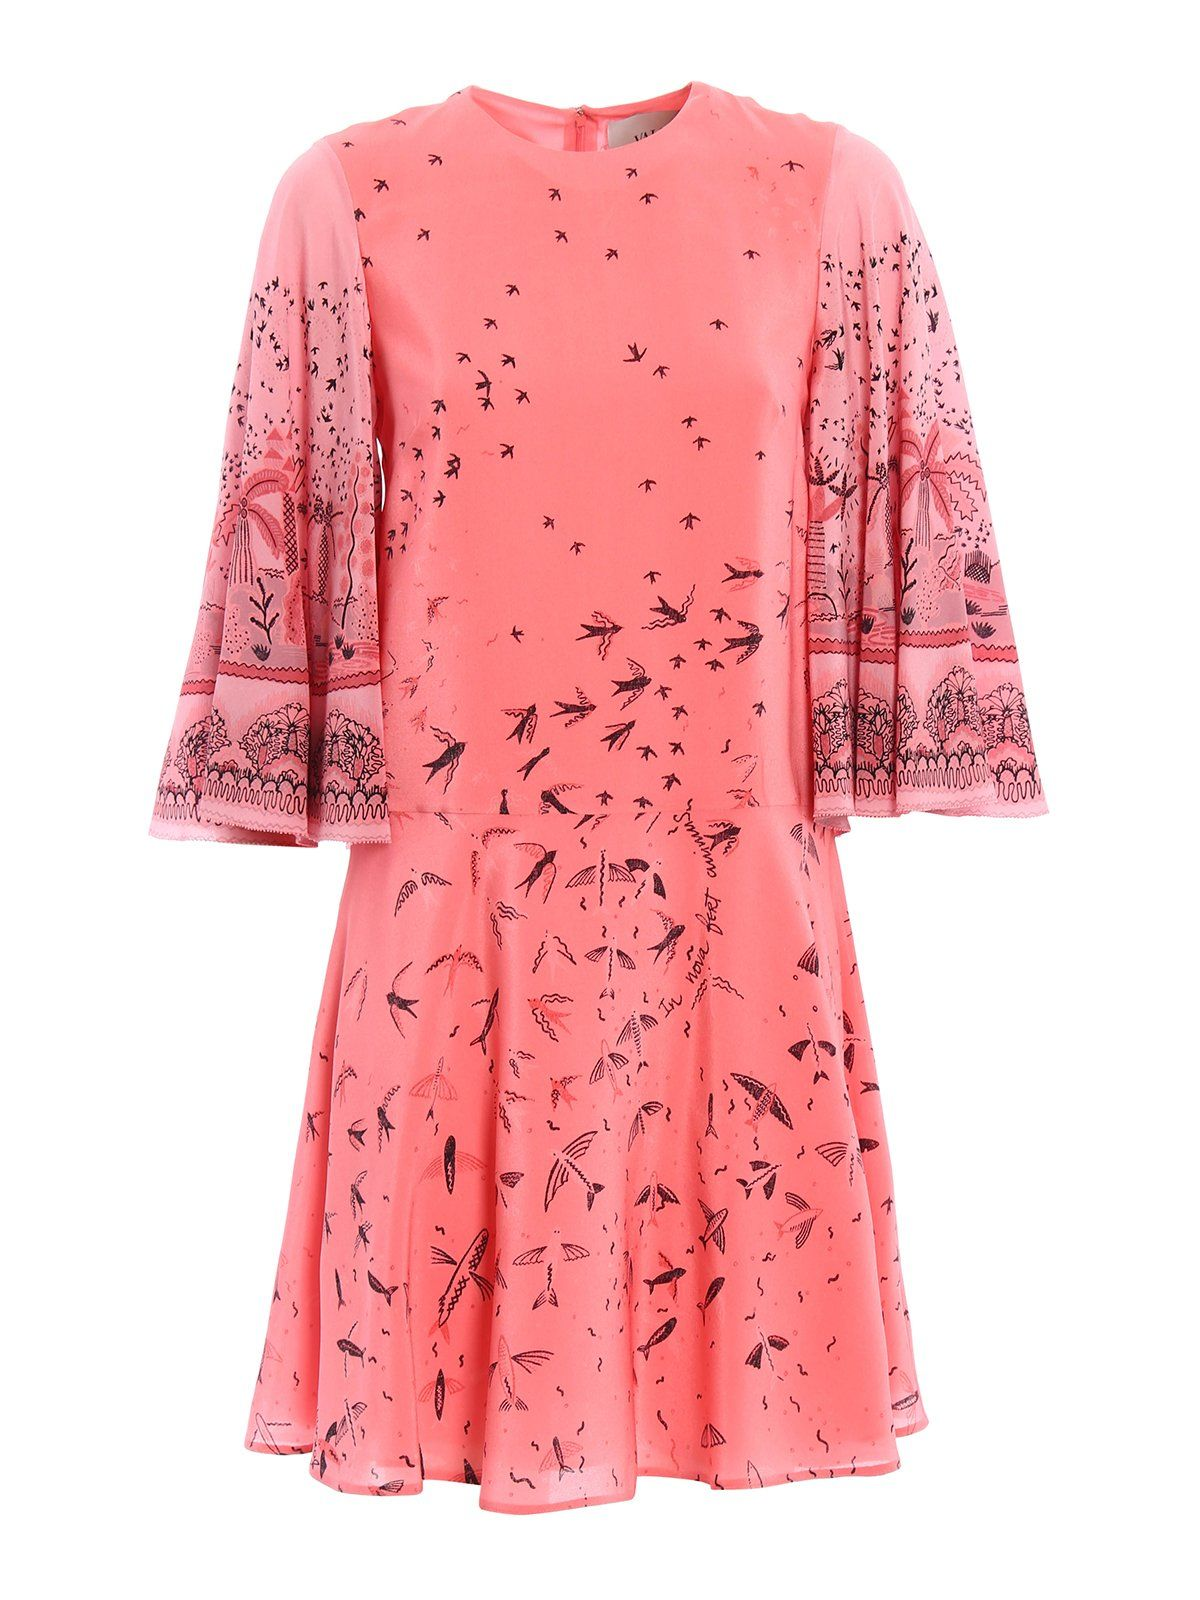 Valentino Swallow Metamorphosis Mini Dress